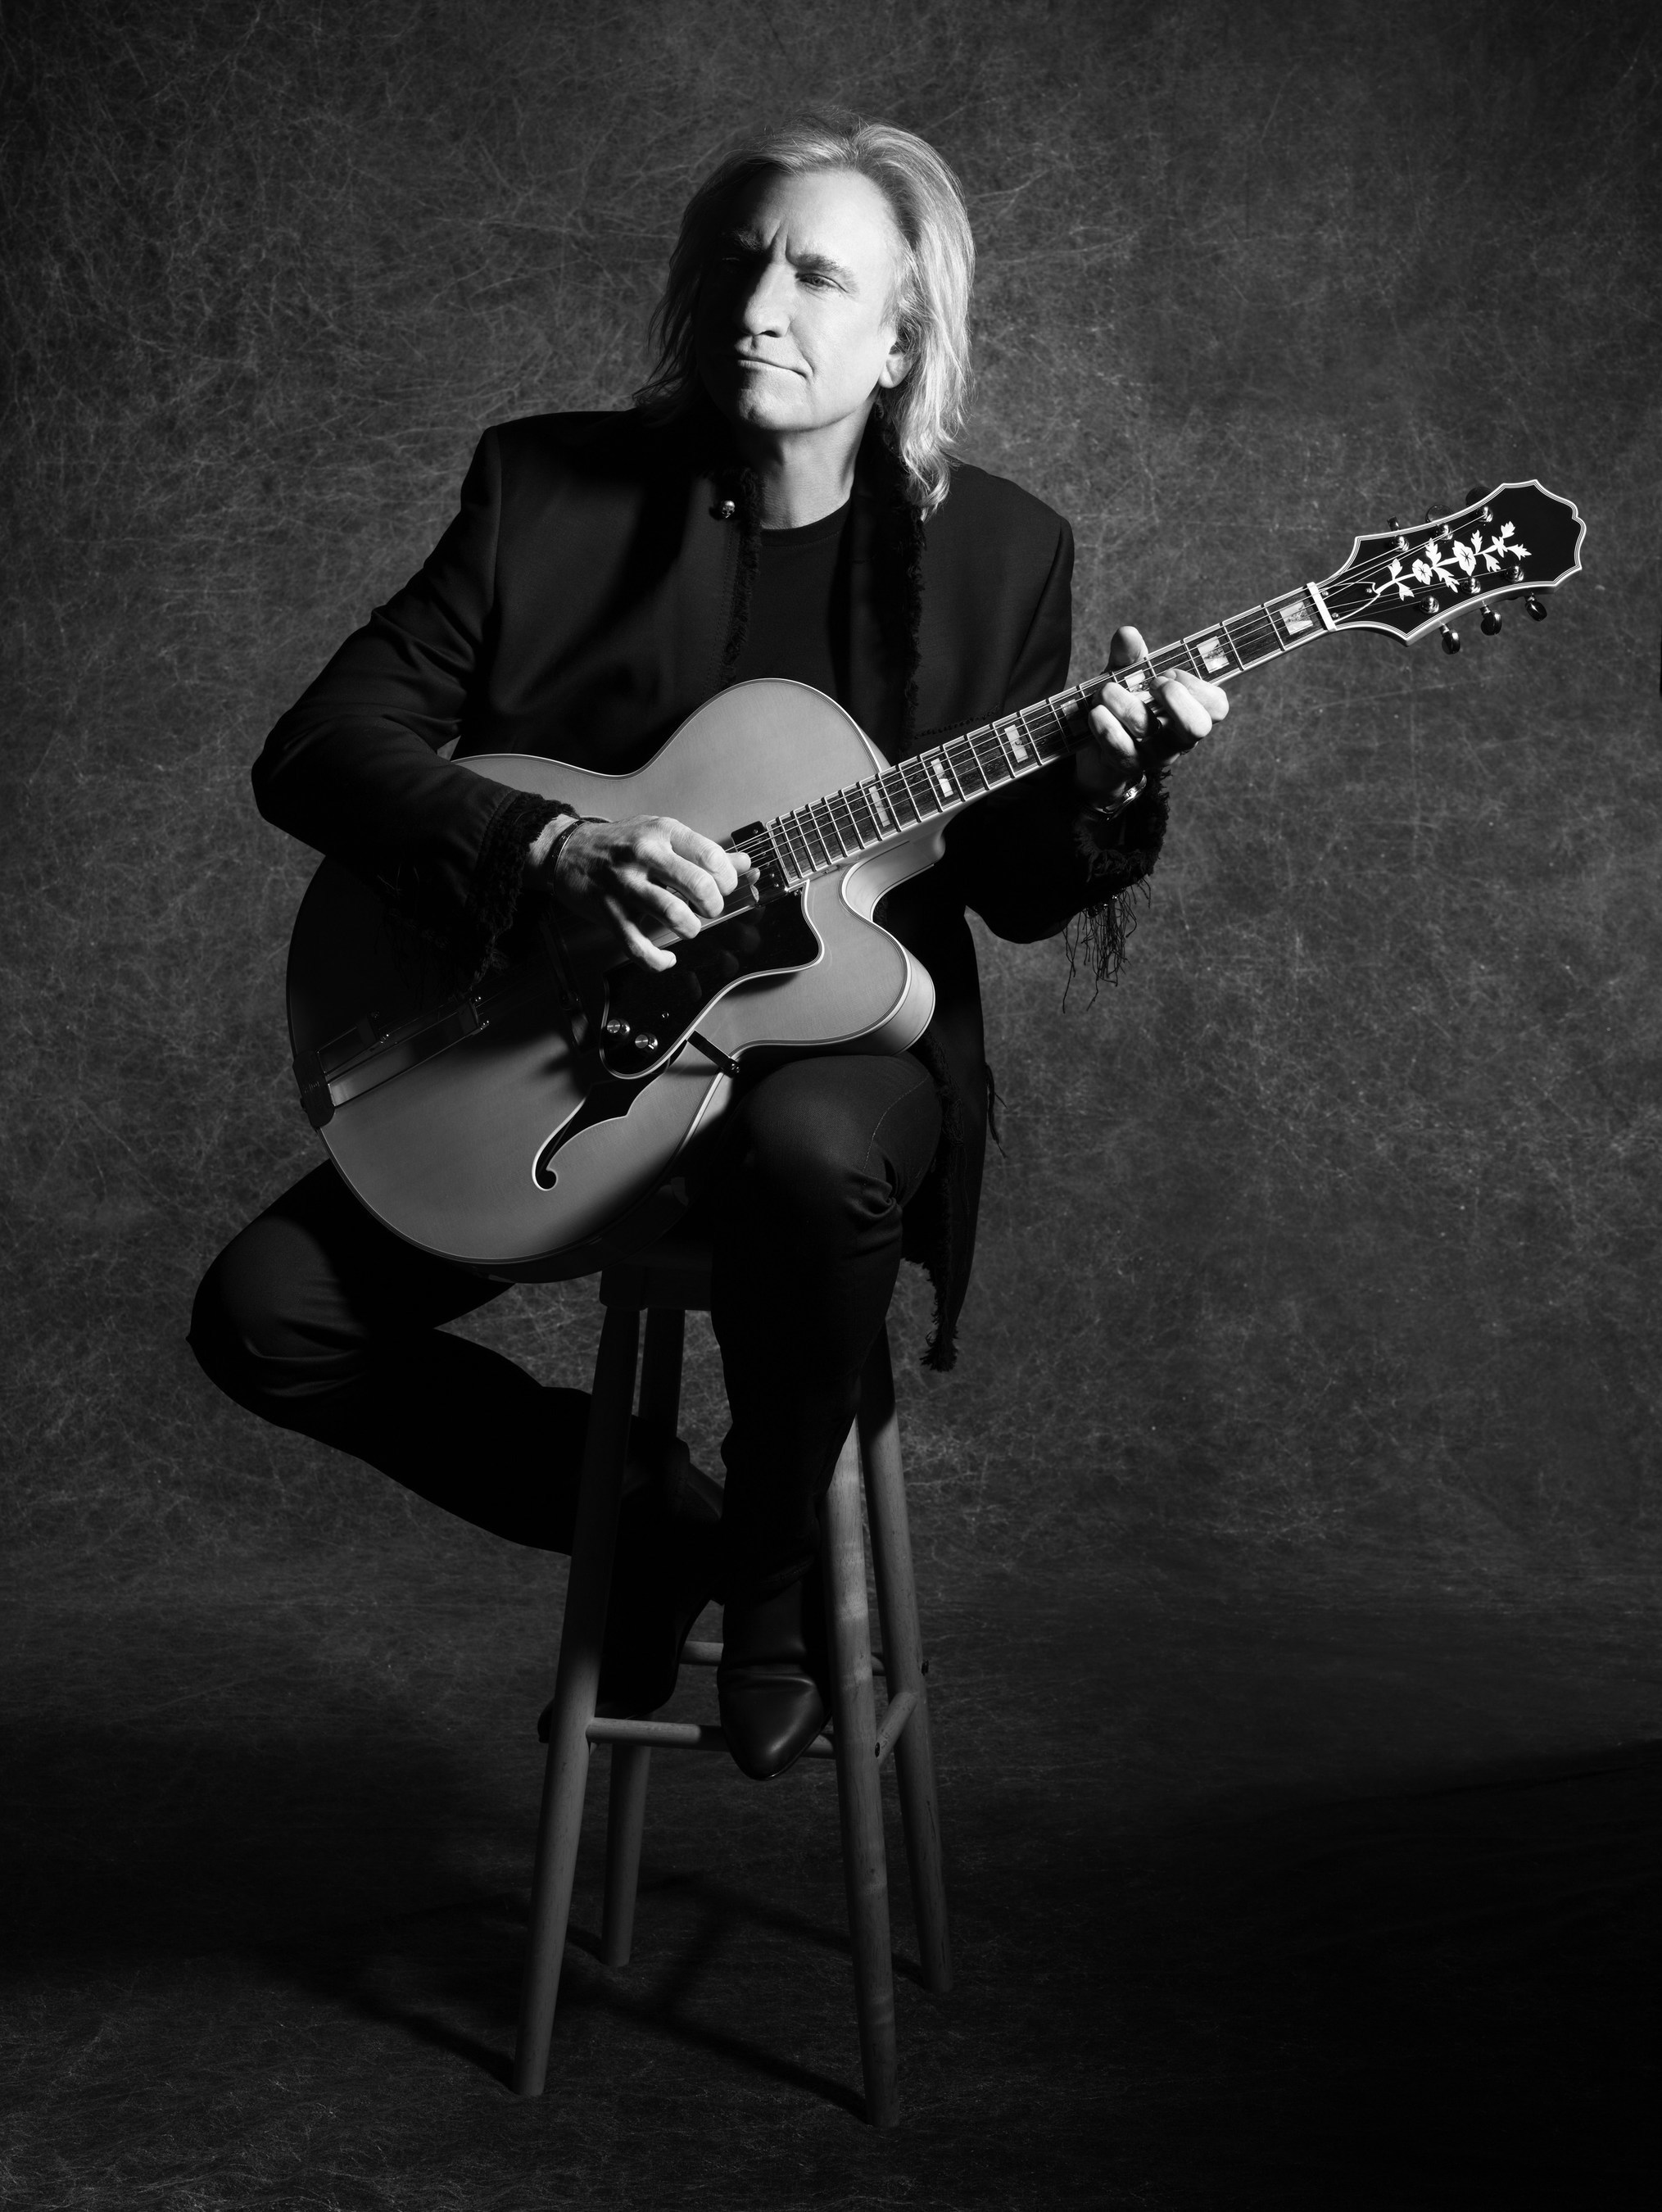 Los Angeles College of Music's 'Let's Talk Music' Series Hosts Joe Walsh in Conversation for Live Audience & Online Viewers